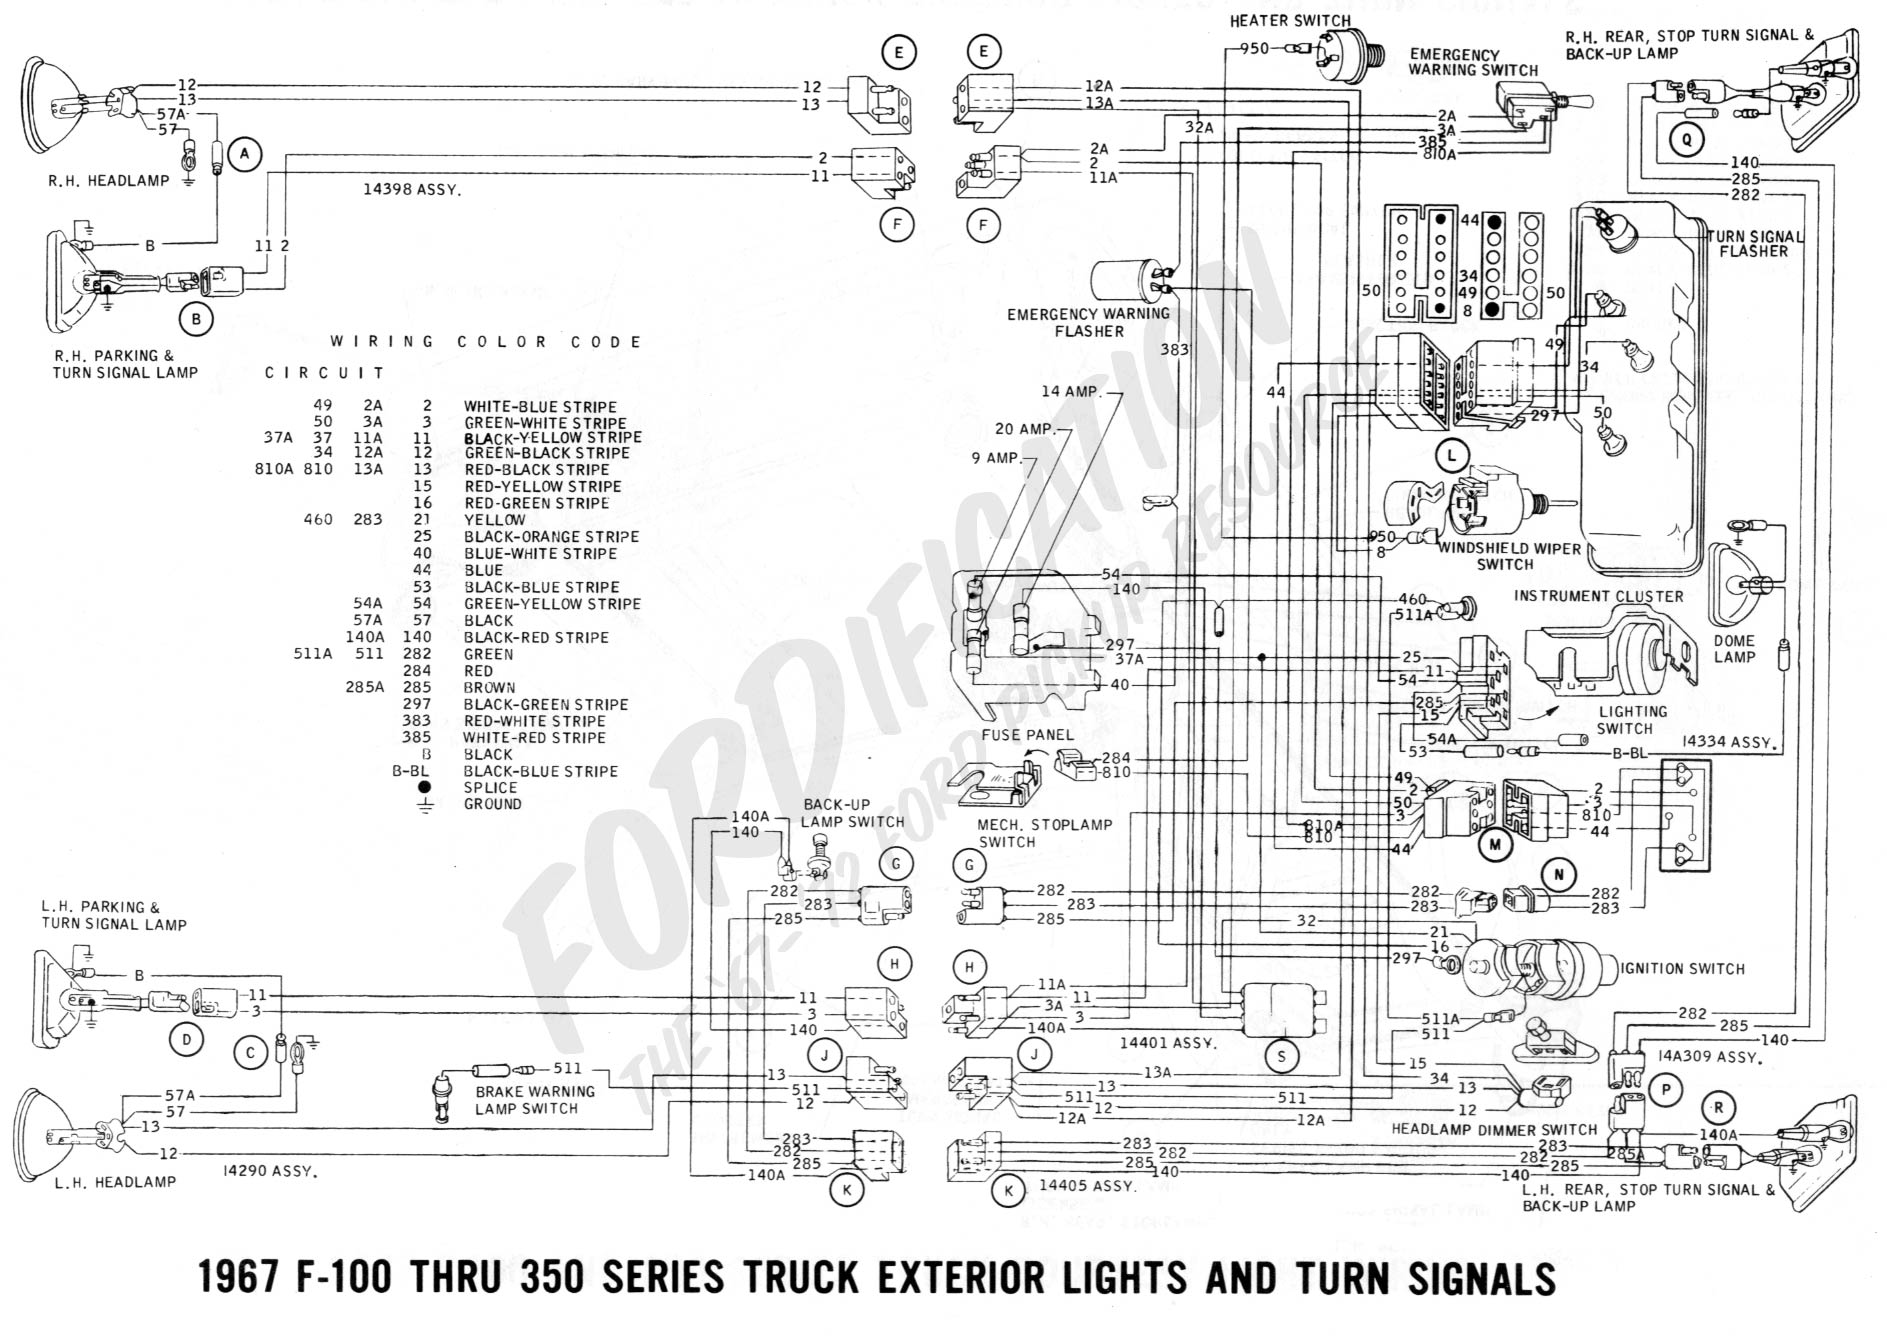 wiring 1967extlights02 turn signal wiring schematic diagram circuit and schematics diagram signal stat 800 wiring diagram at eliteediting.co